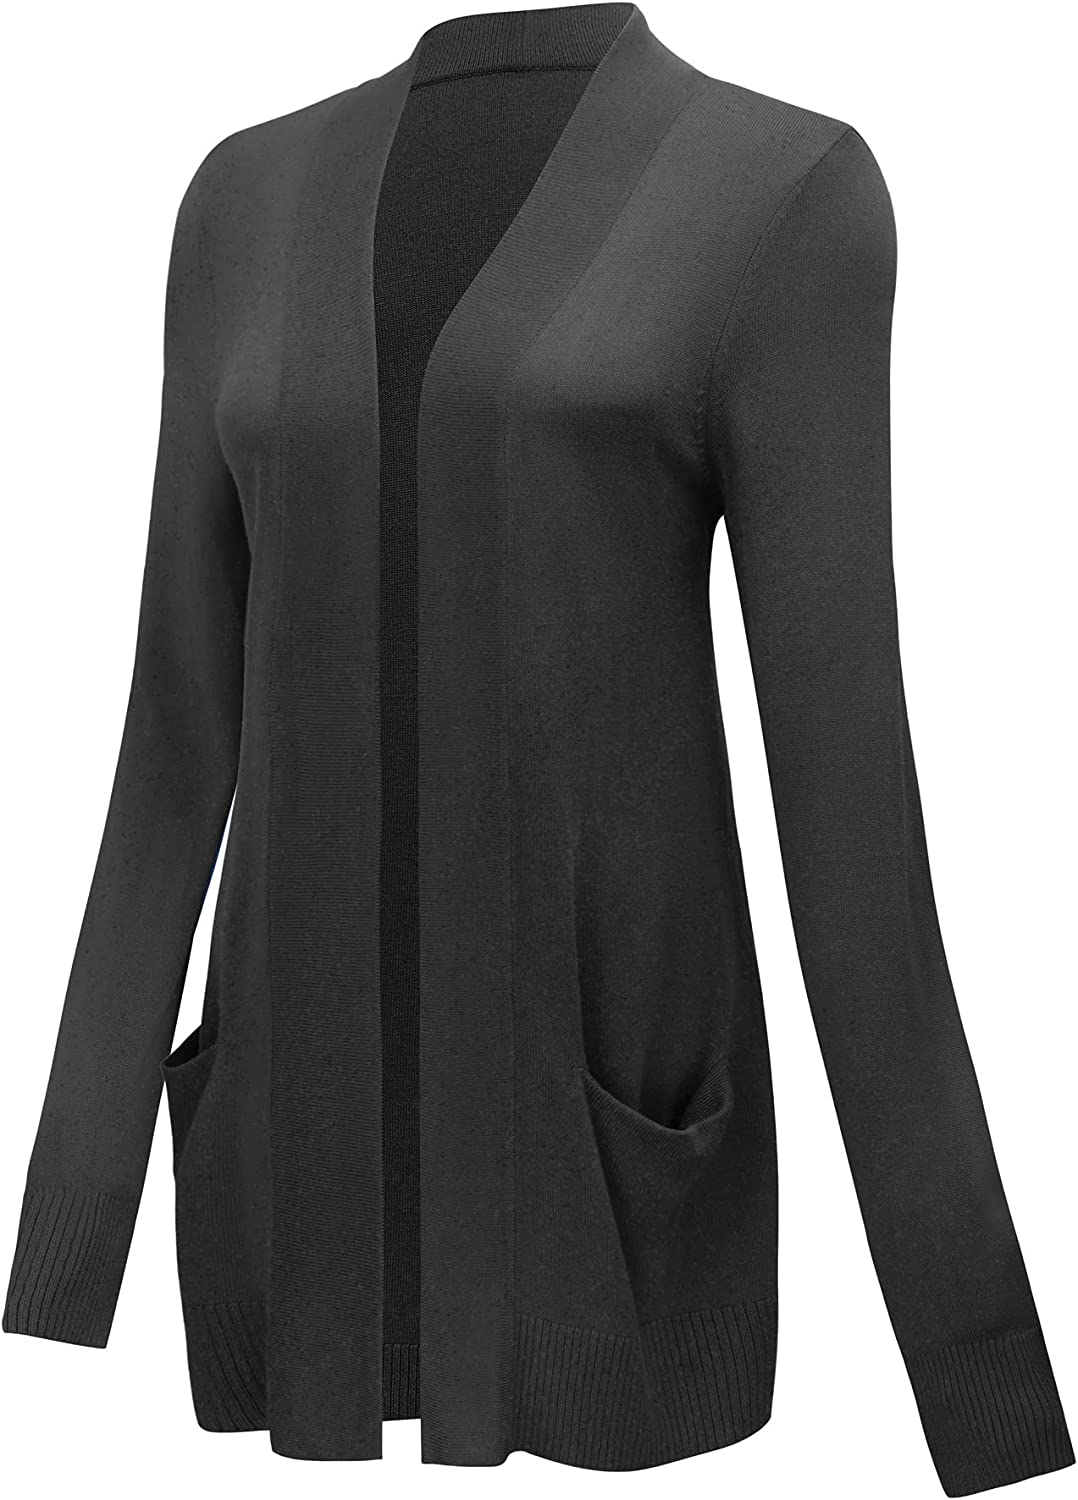 Spicy Sandia Women's Open Front Lightweight Long Cardigans Knit Special sale Sale special price item